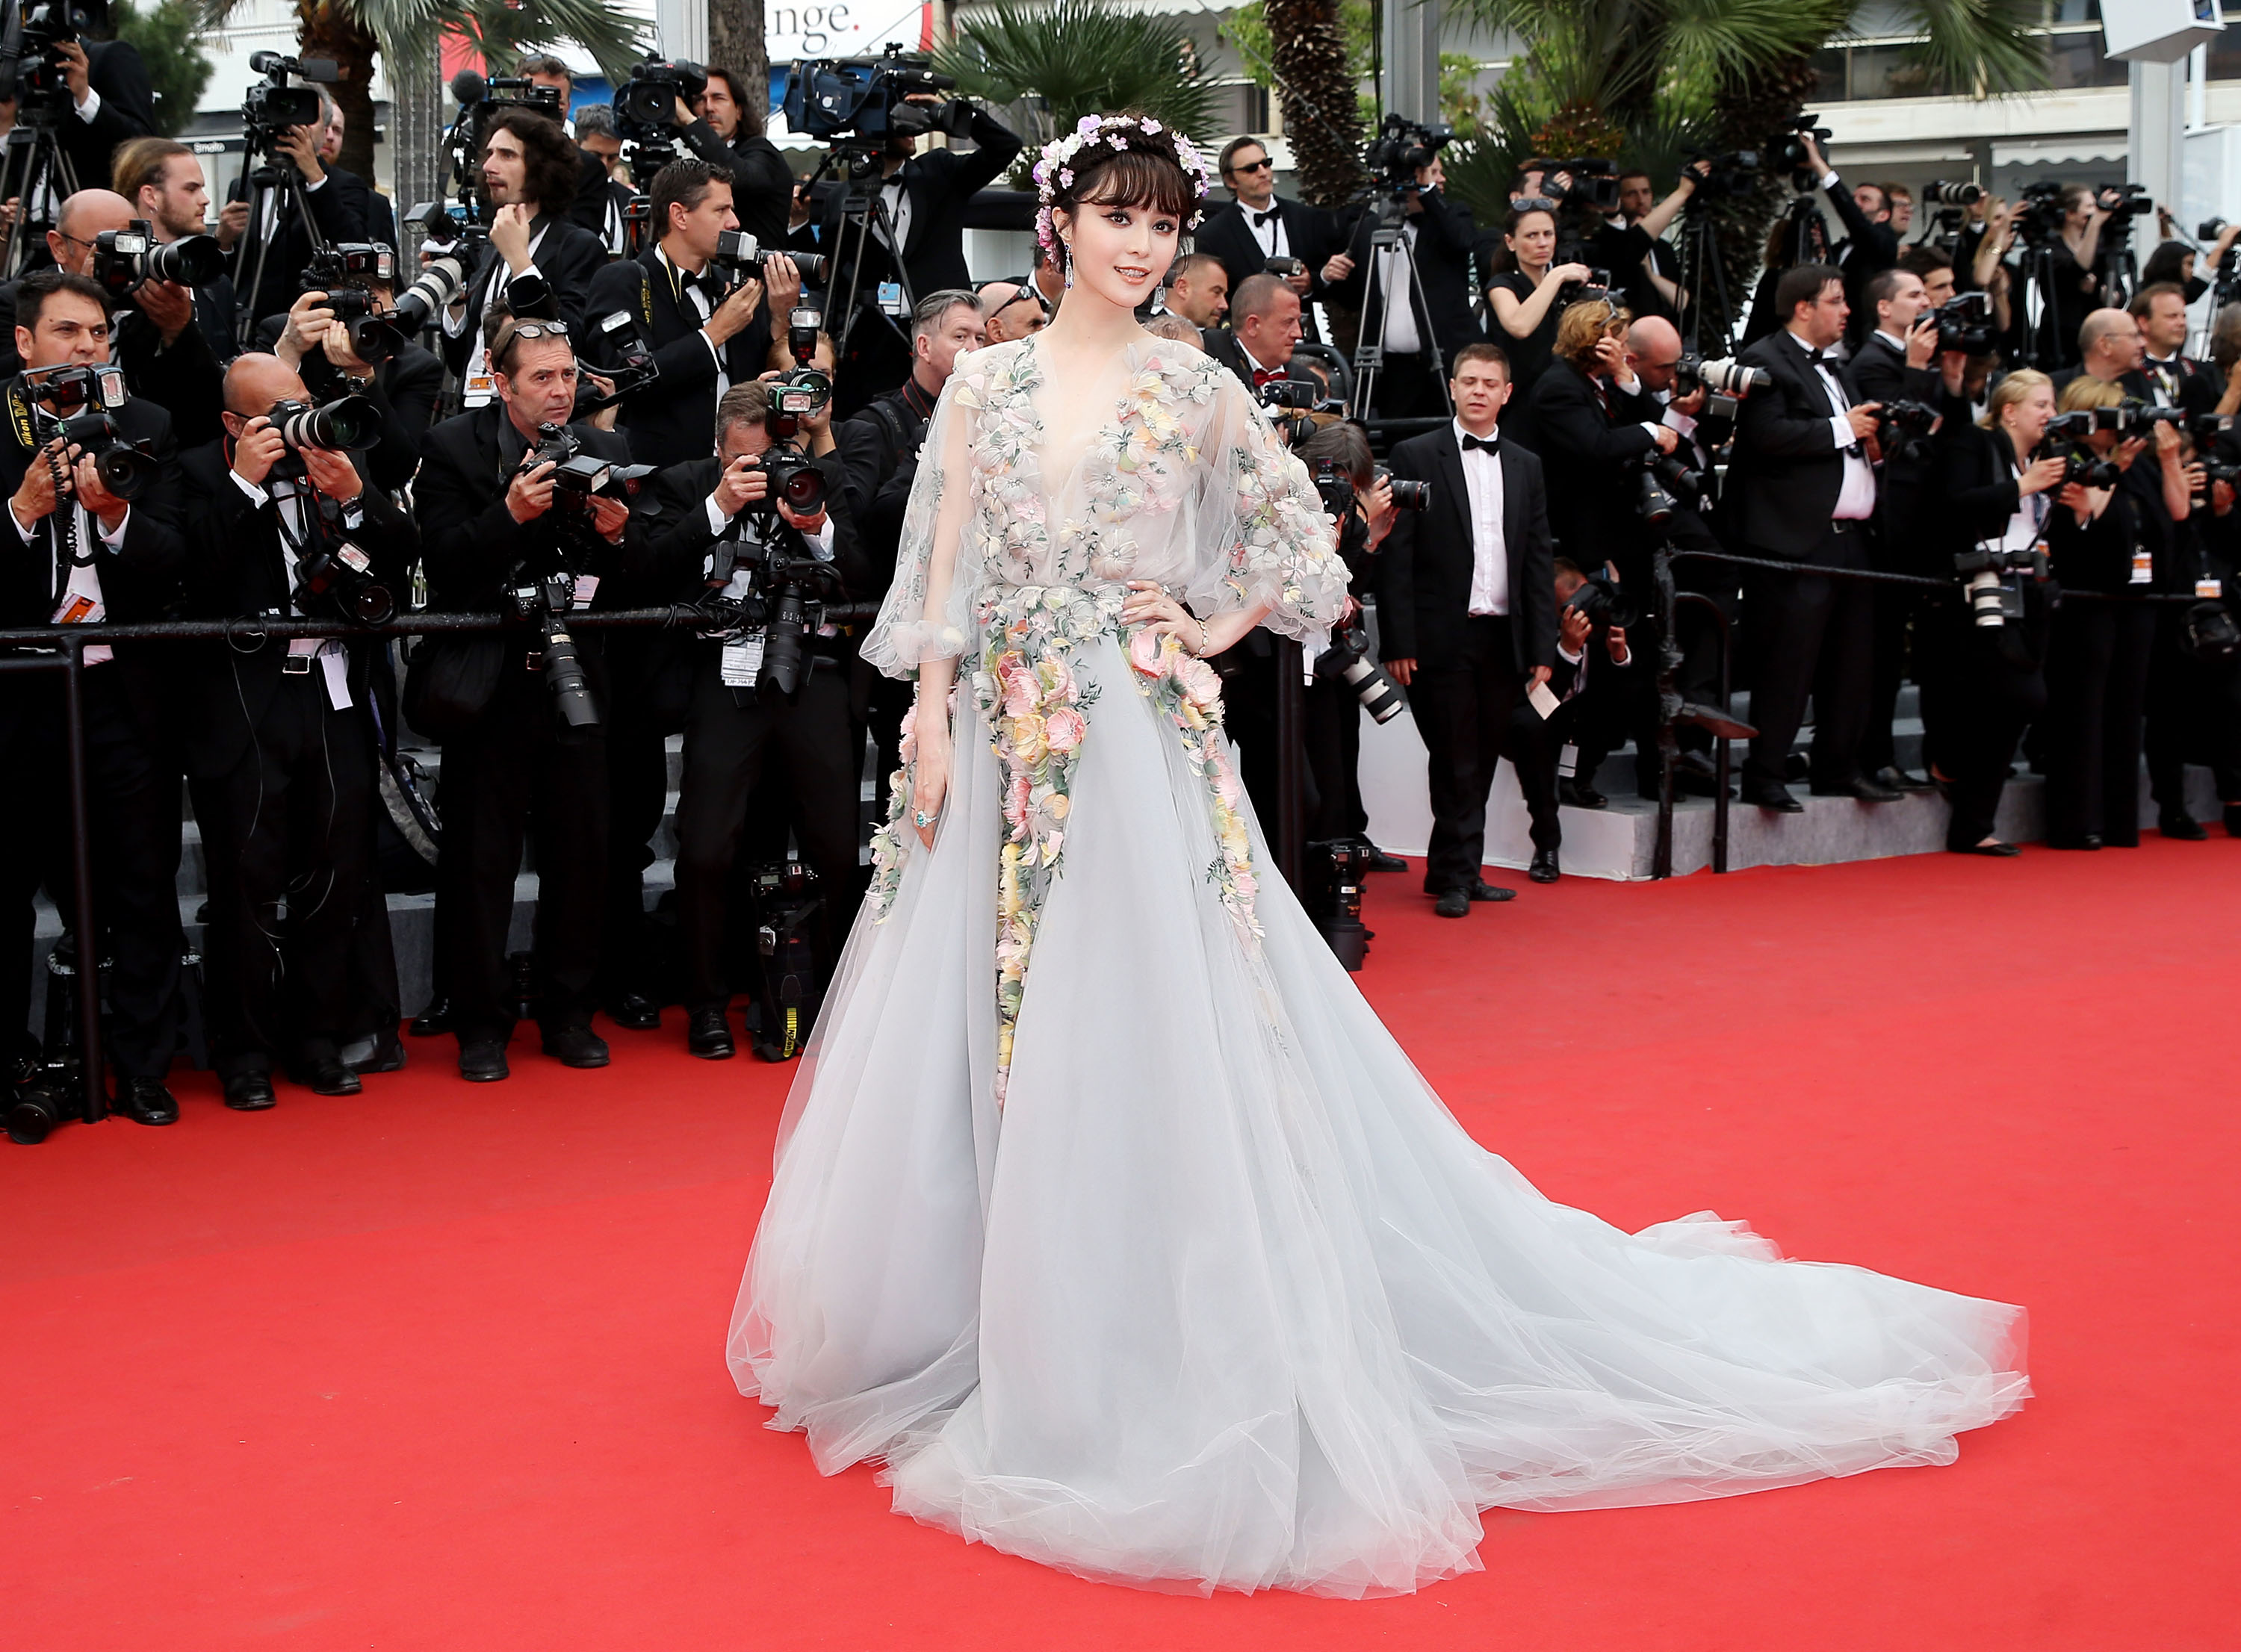 Fan Bingbing wearing a flower-covered tulle Marchesa ball gown